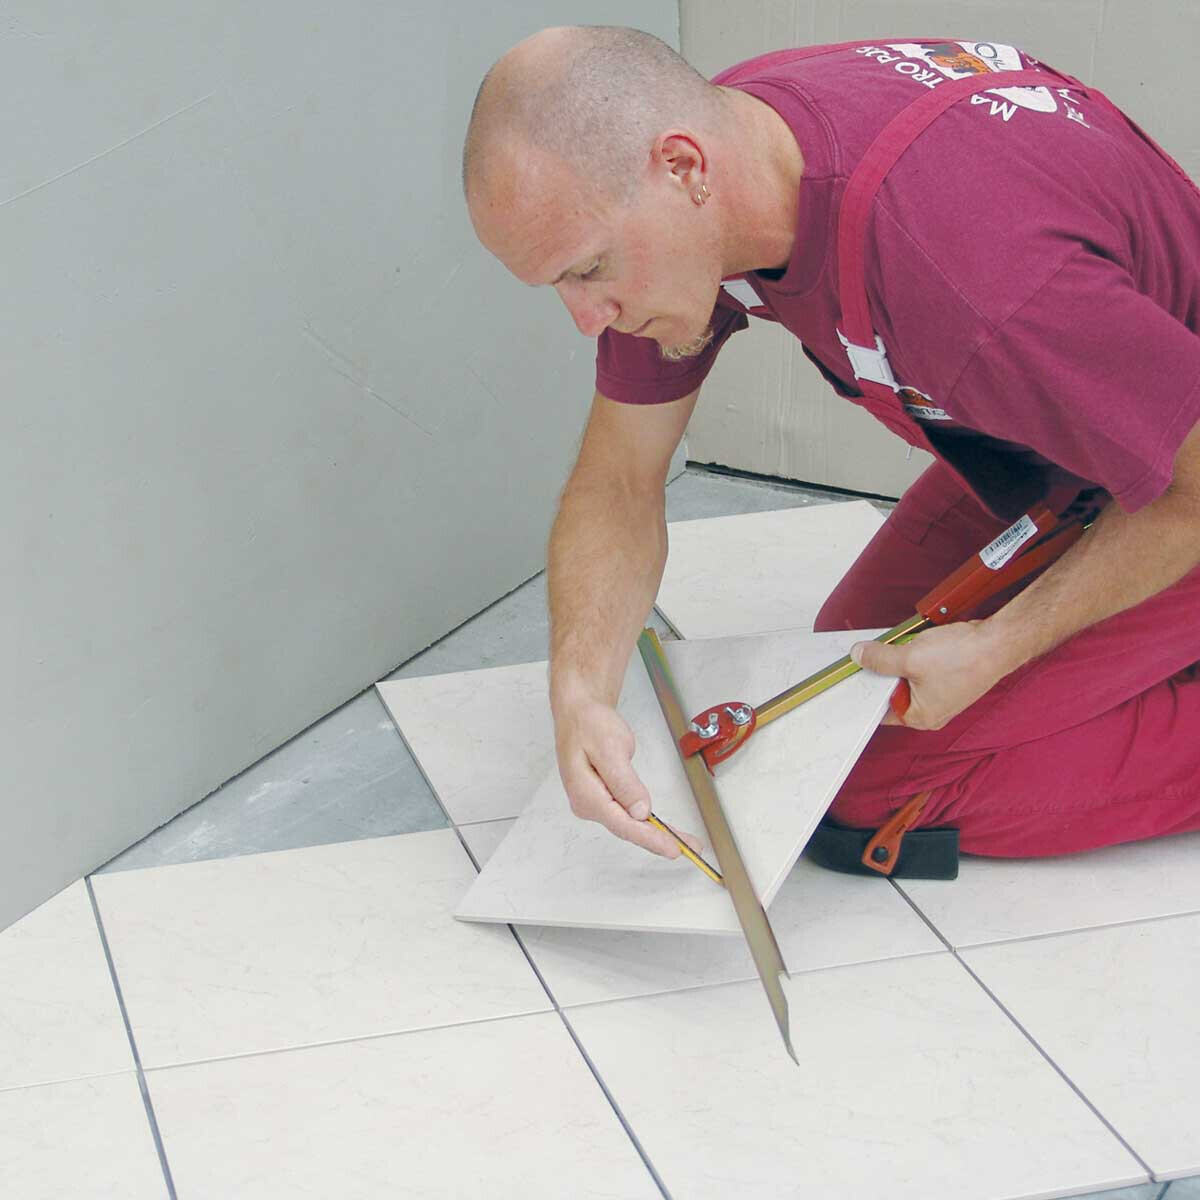 Marking Tile for Floor Layout with All Angle Guide